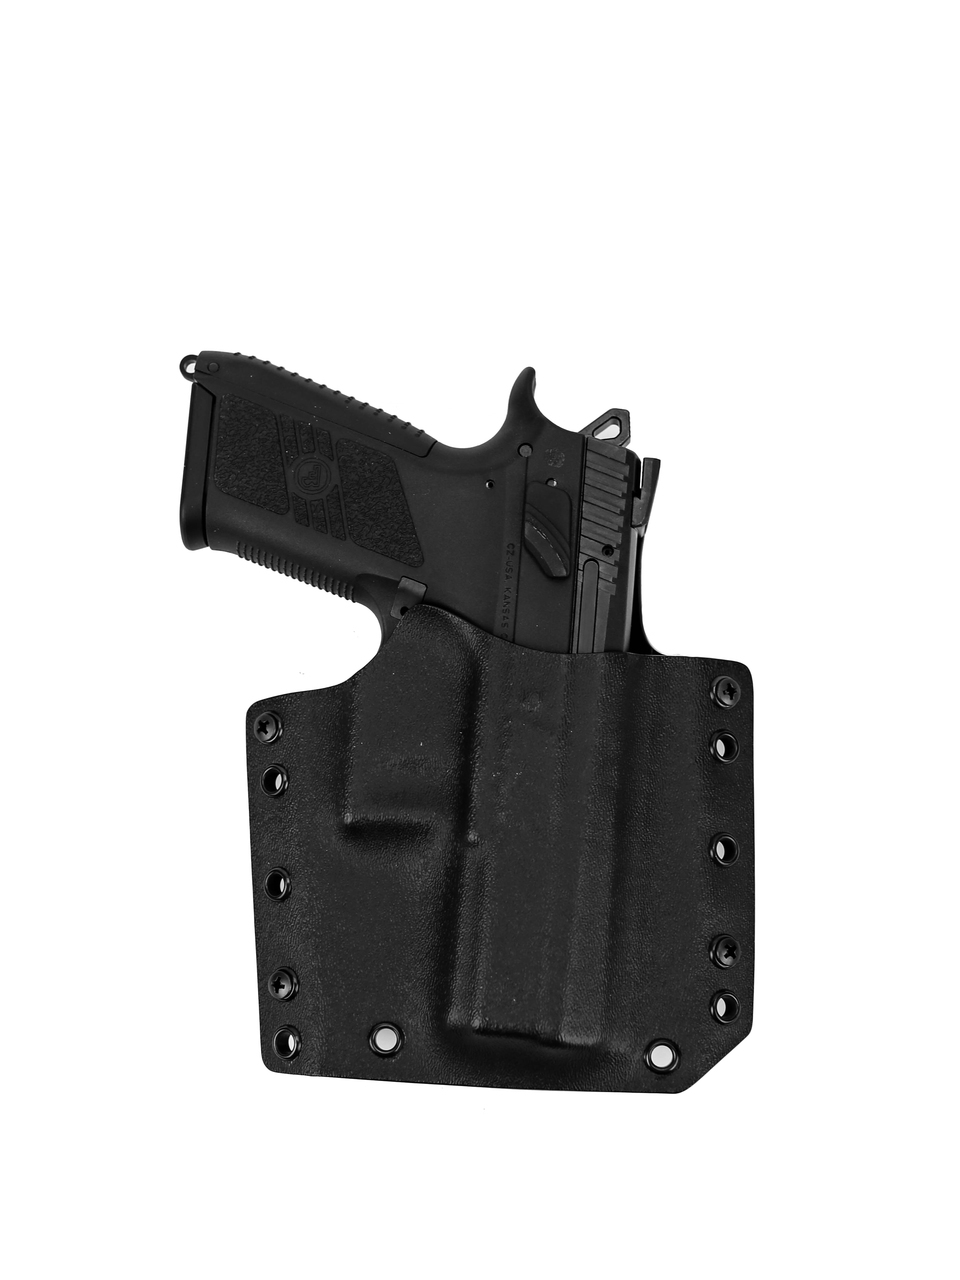 Raven Concealment Holsters